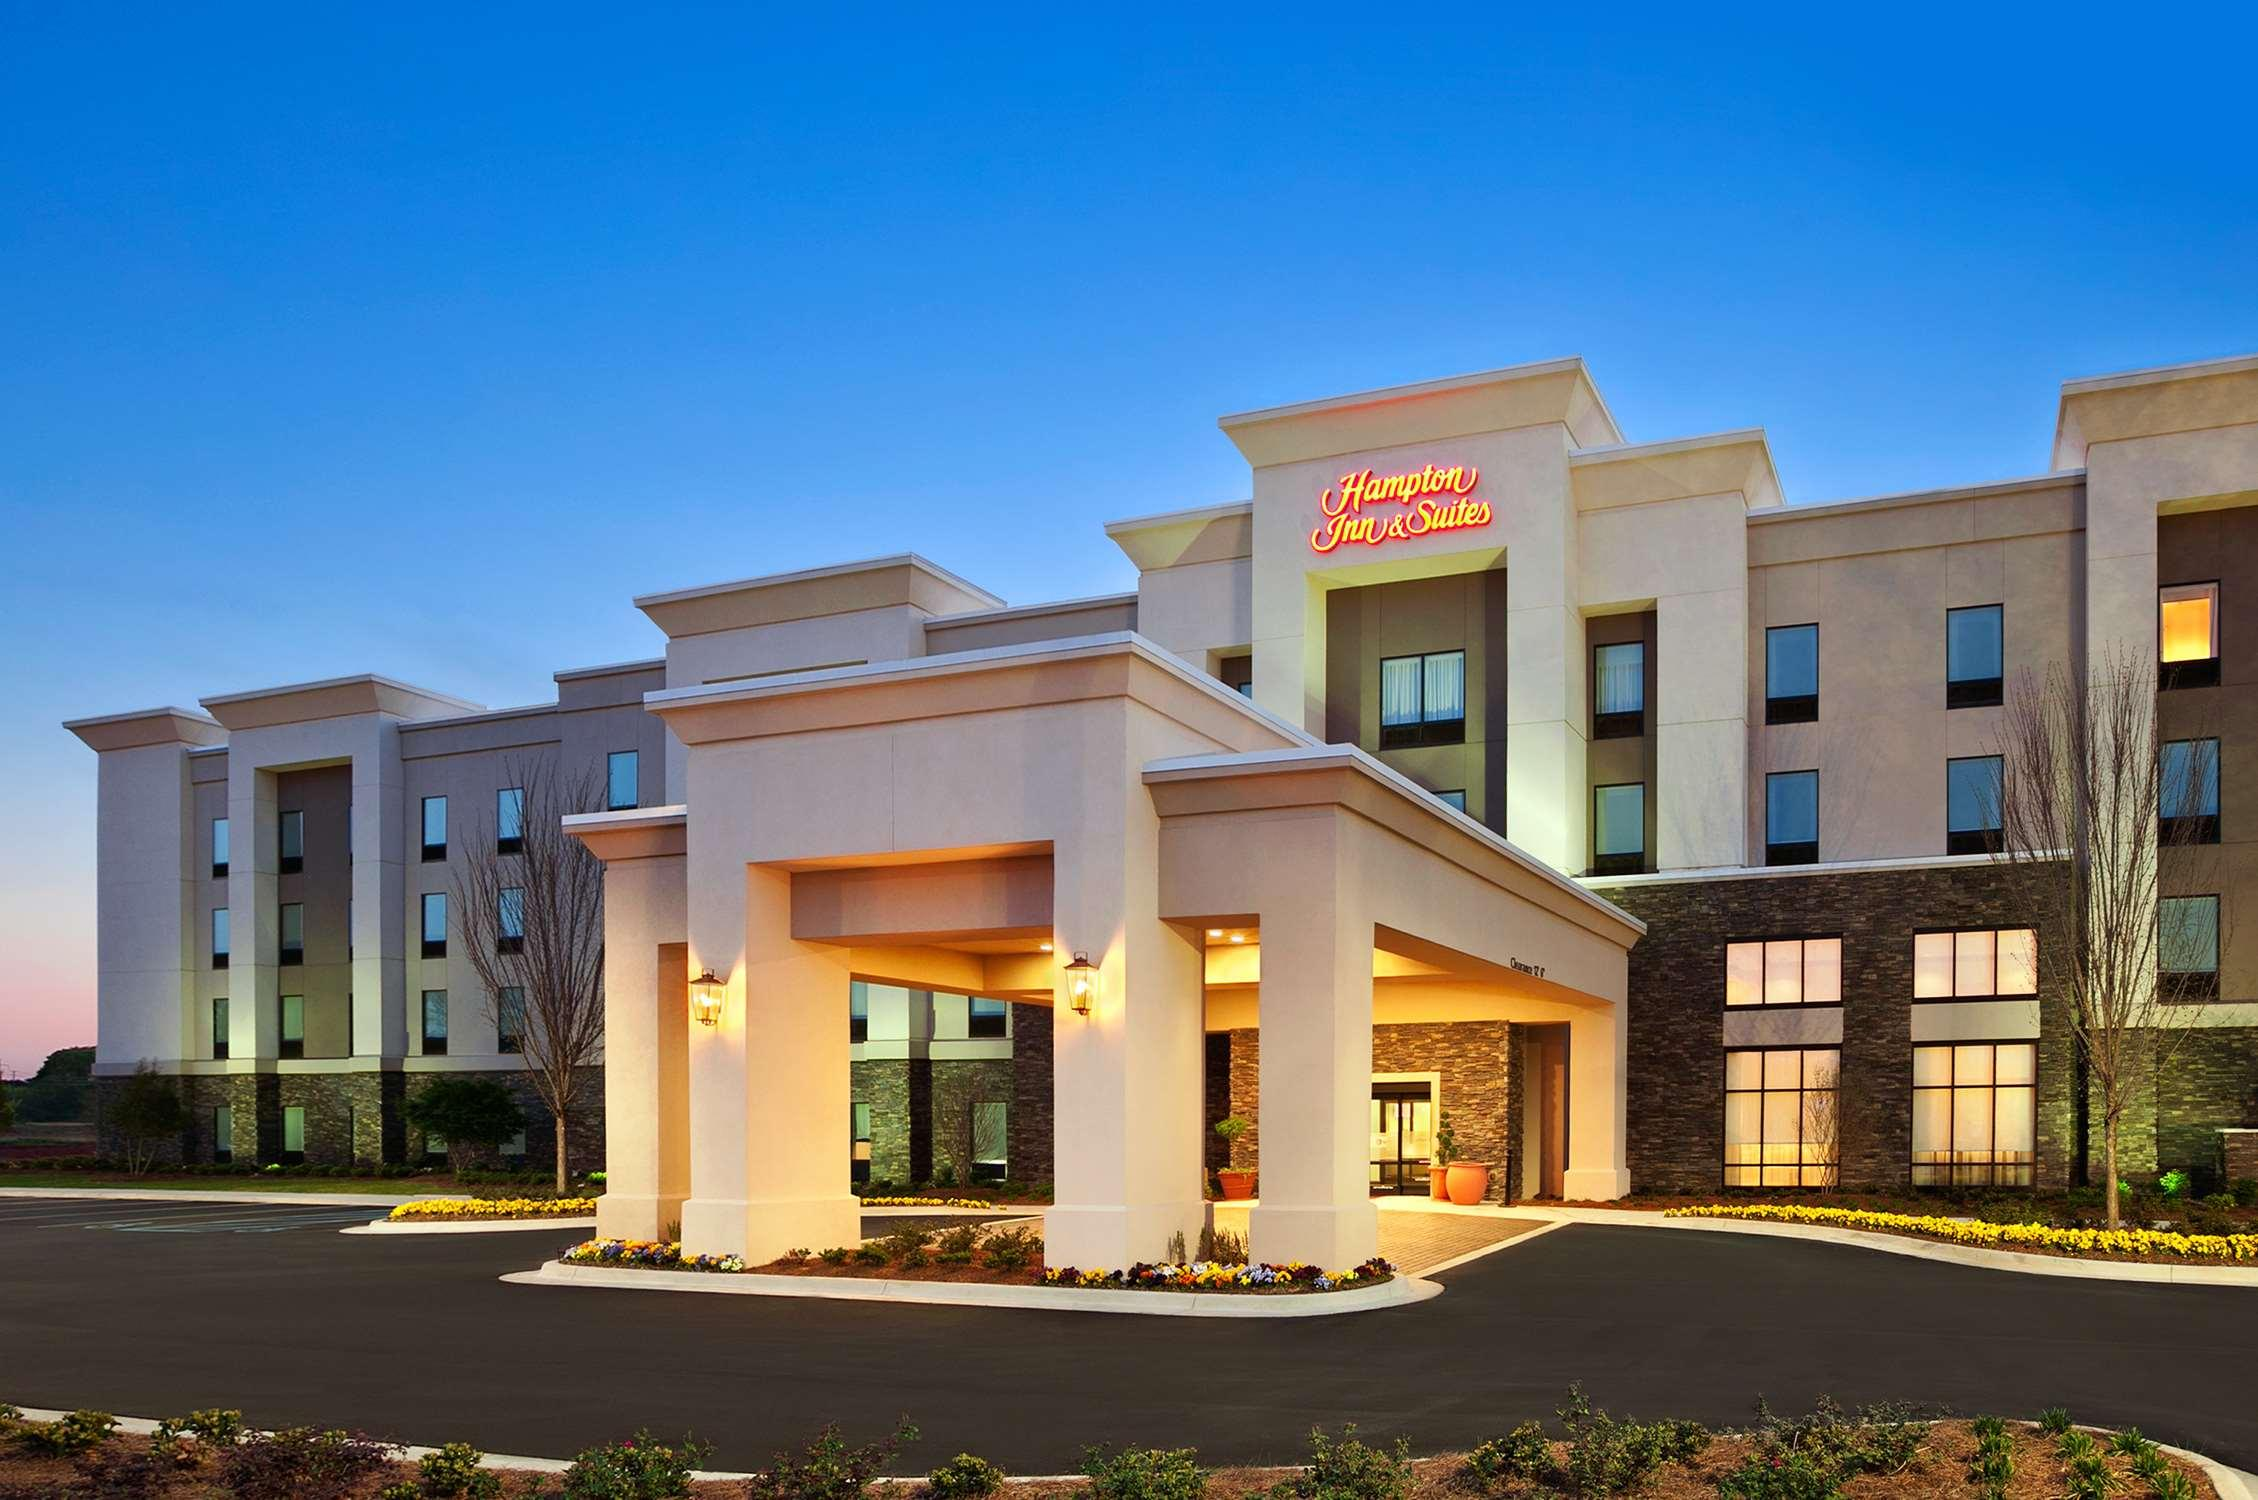 Hampton Inn & Suites Huntsville/Research, Madison